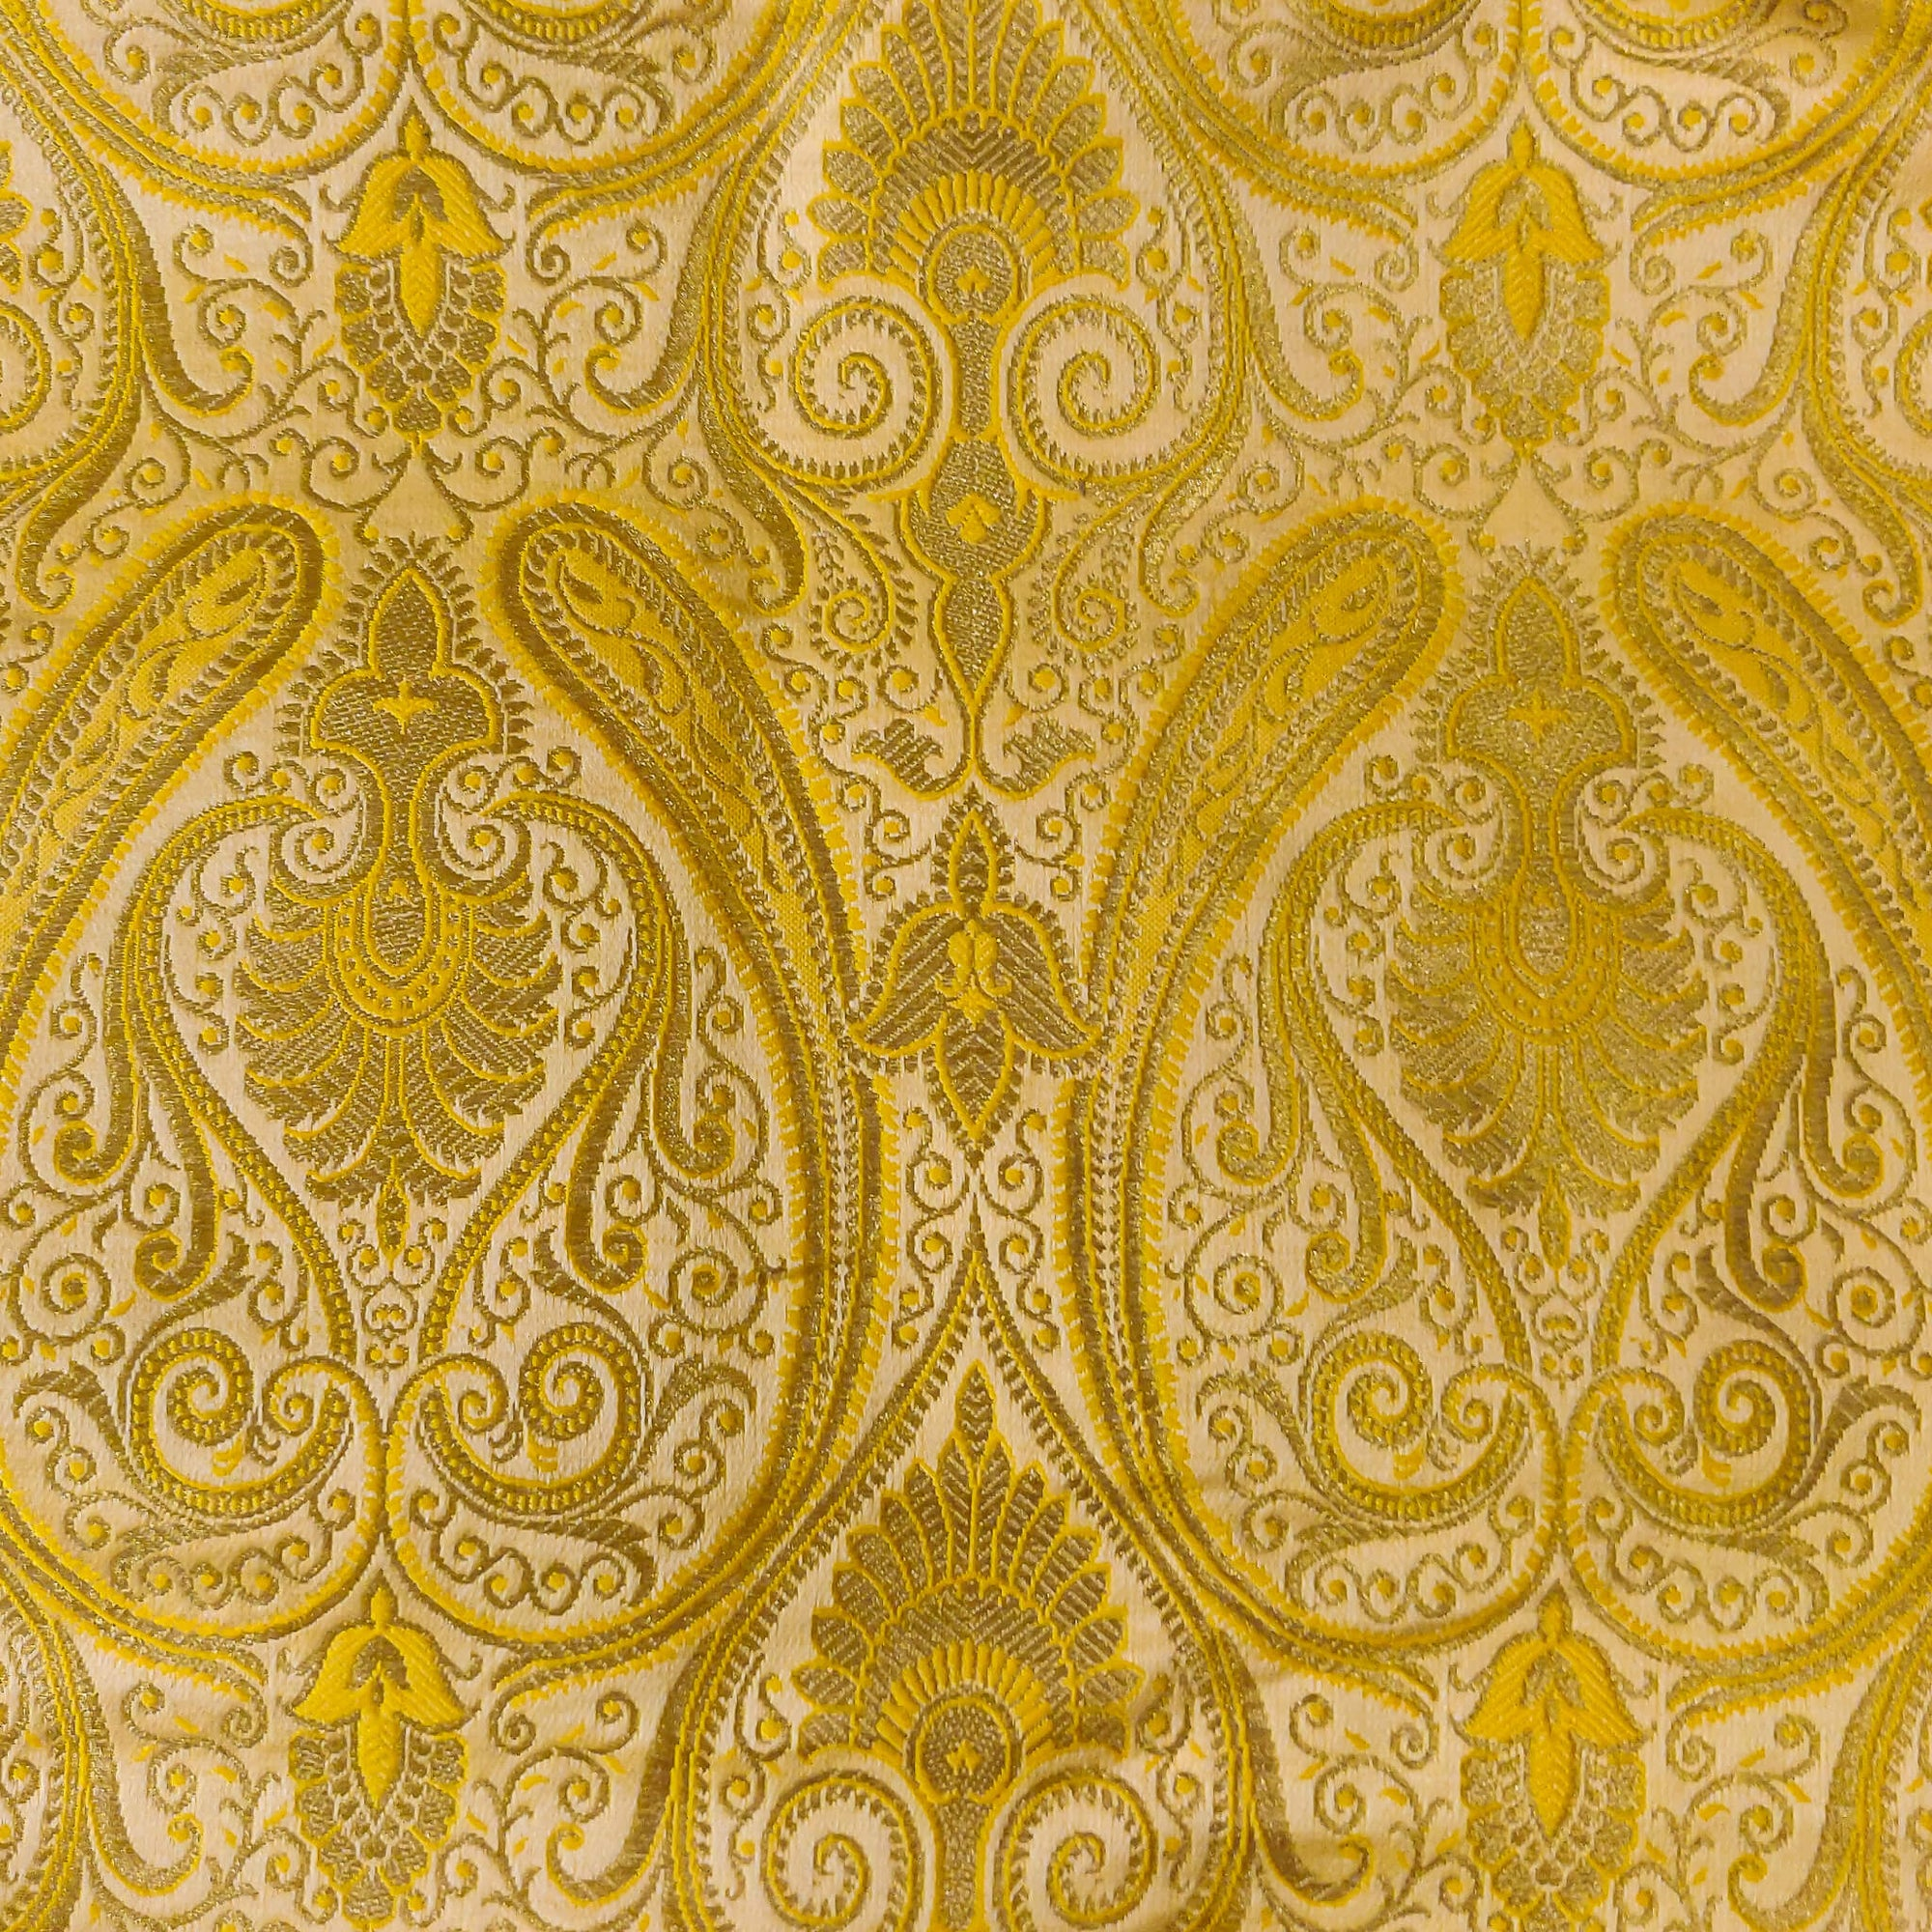 Royal Brocade Yellow Handwoven Fabric